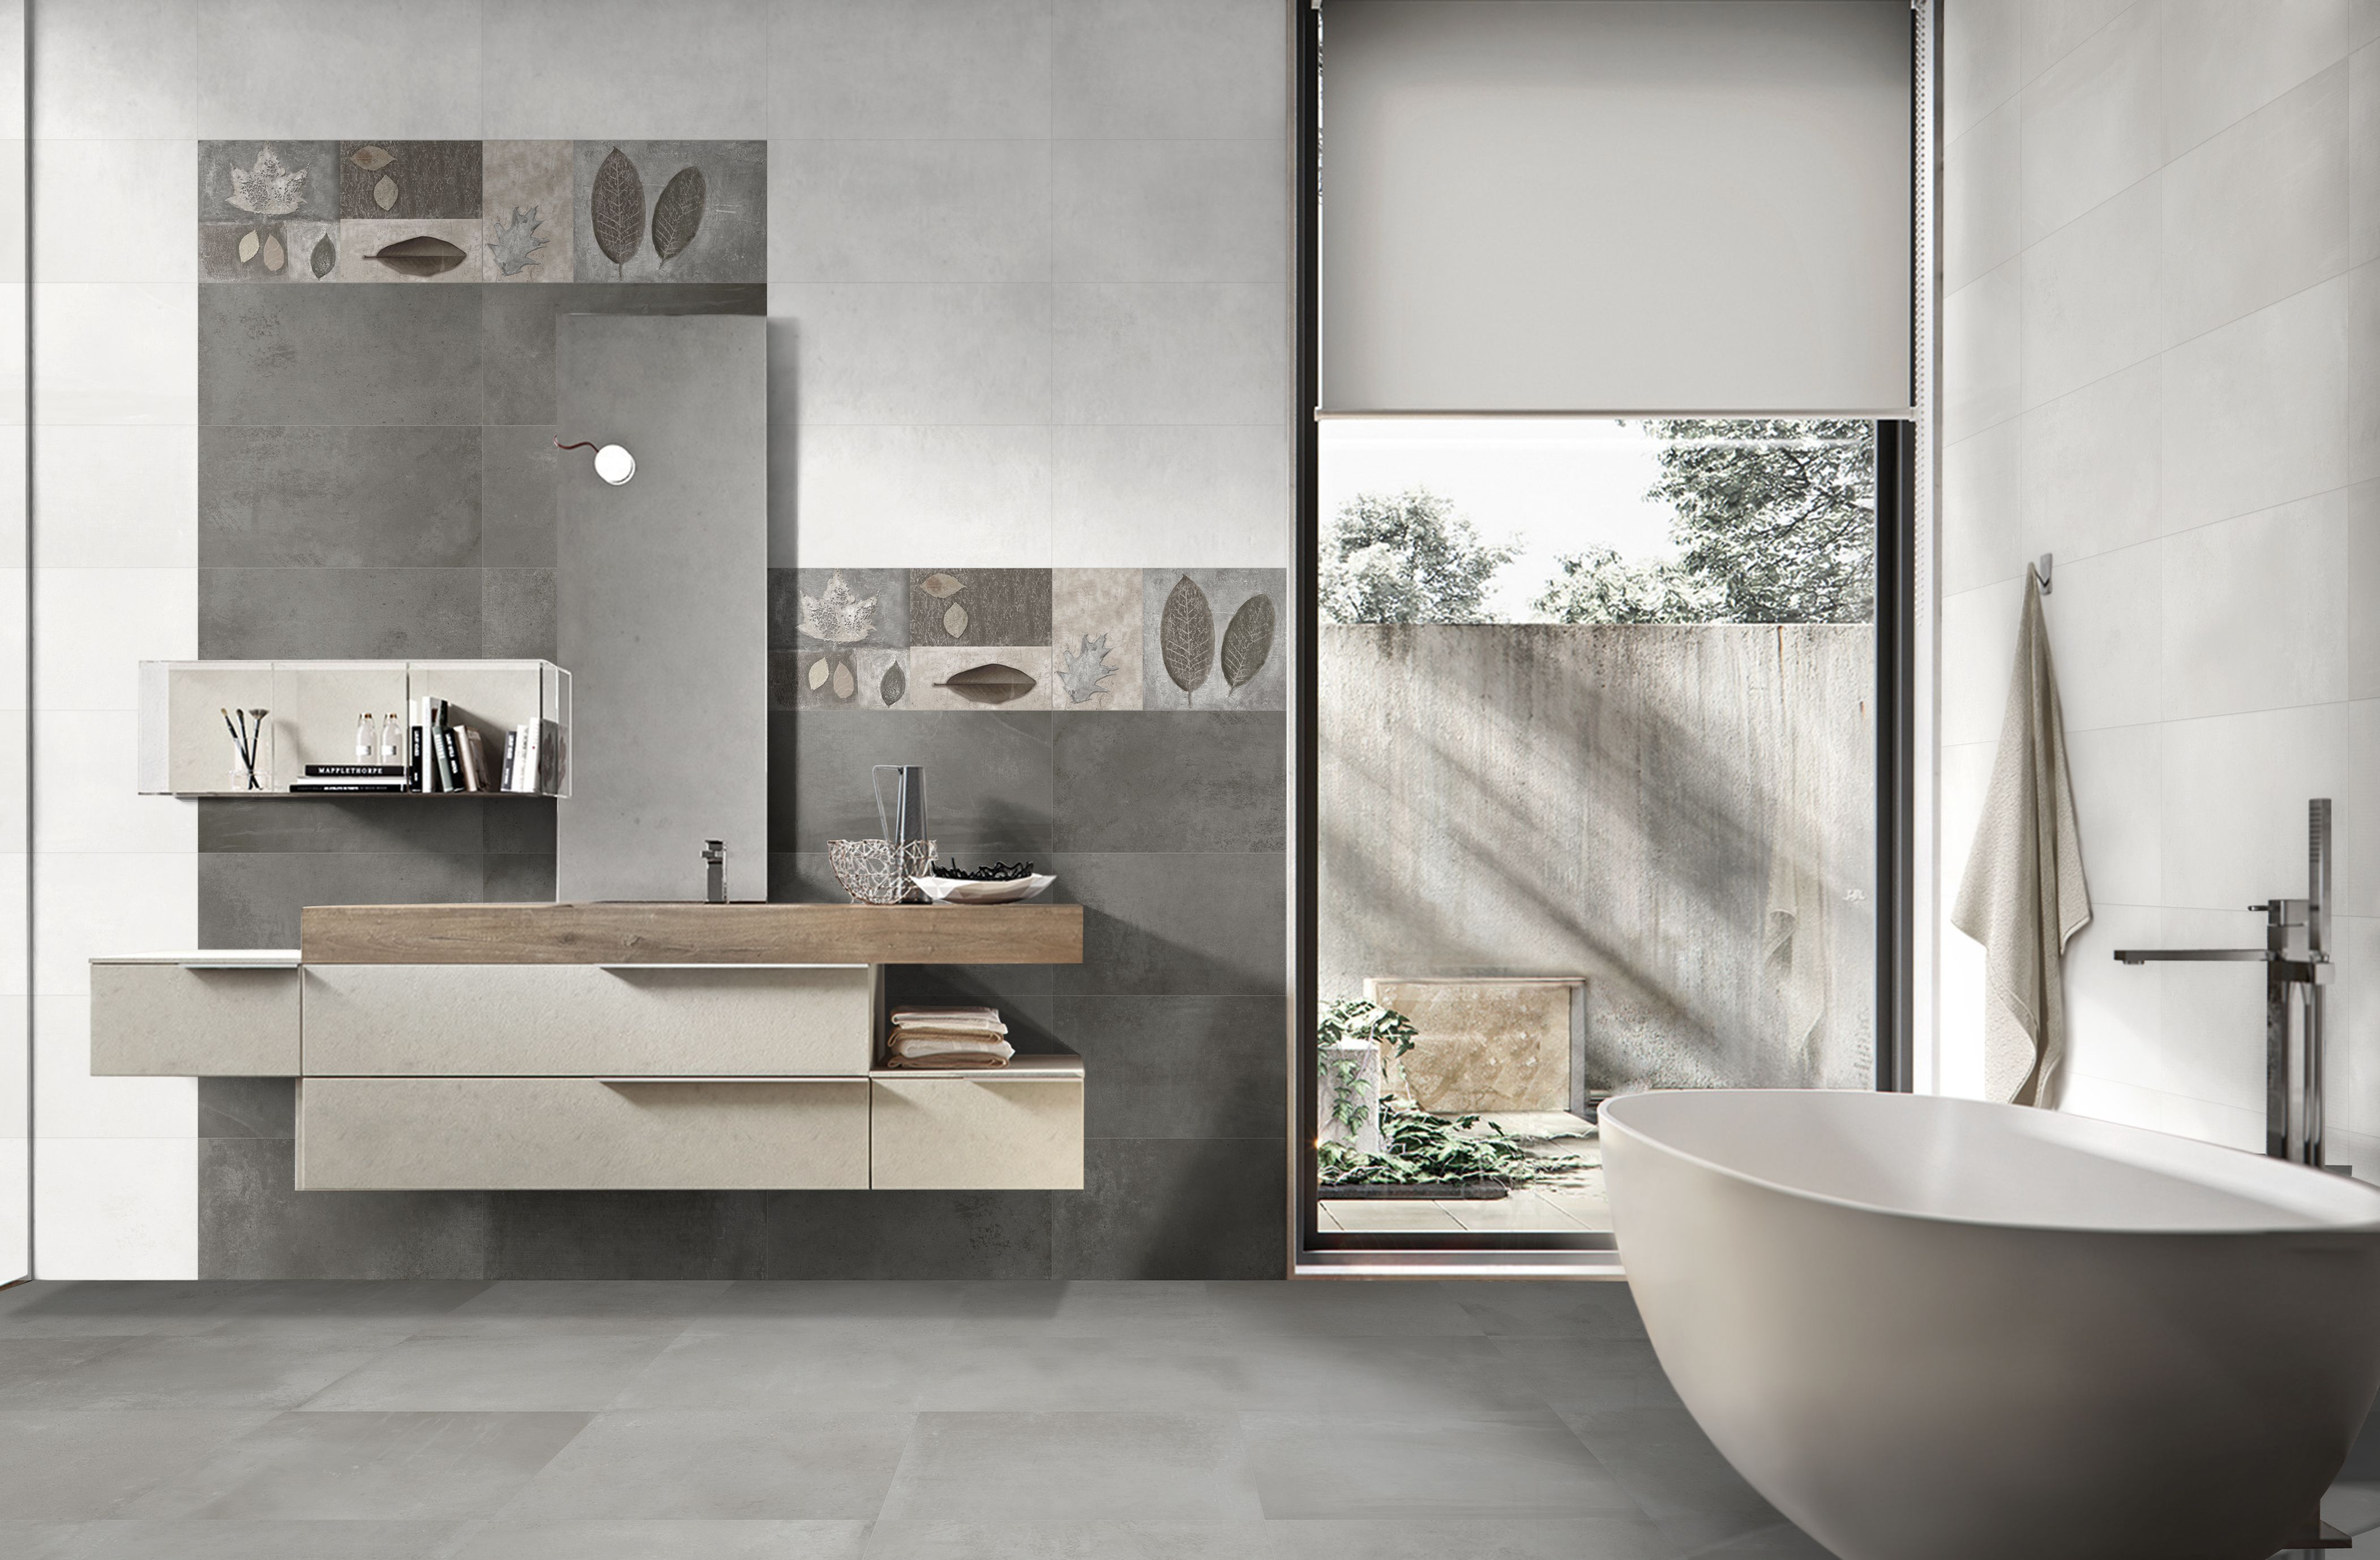 Pin by Novogres Ceramic Tiles on BATHROOM INSPIRATIONS | Pinterest ...